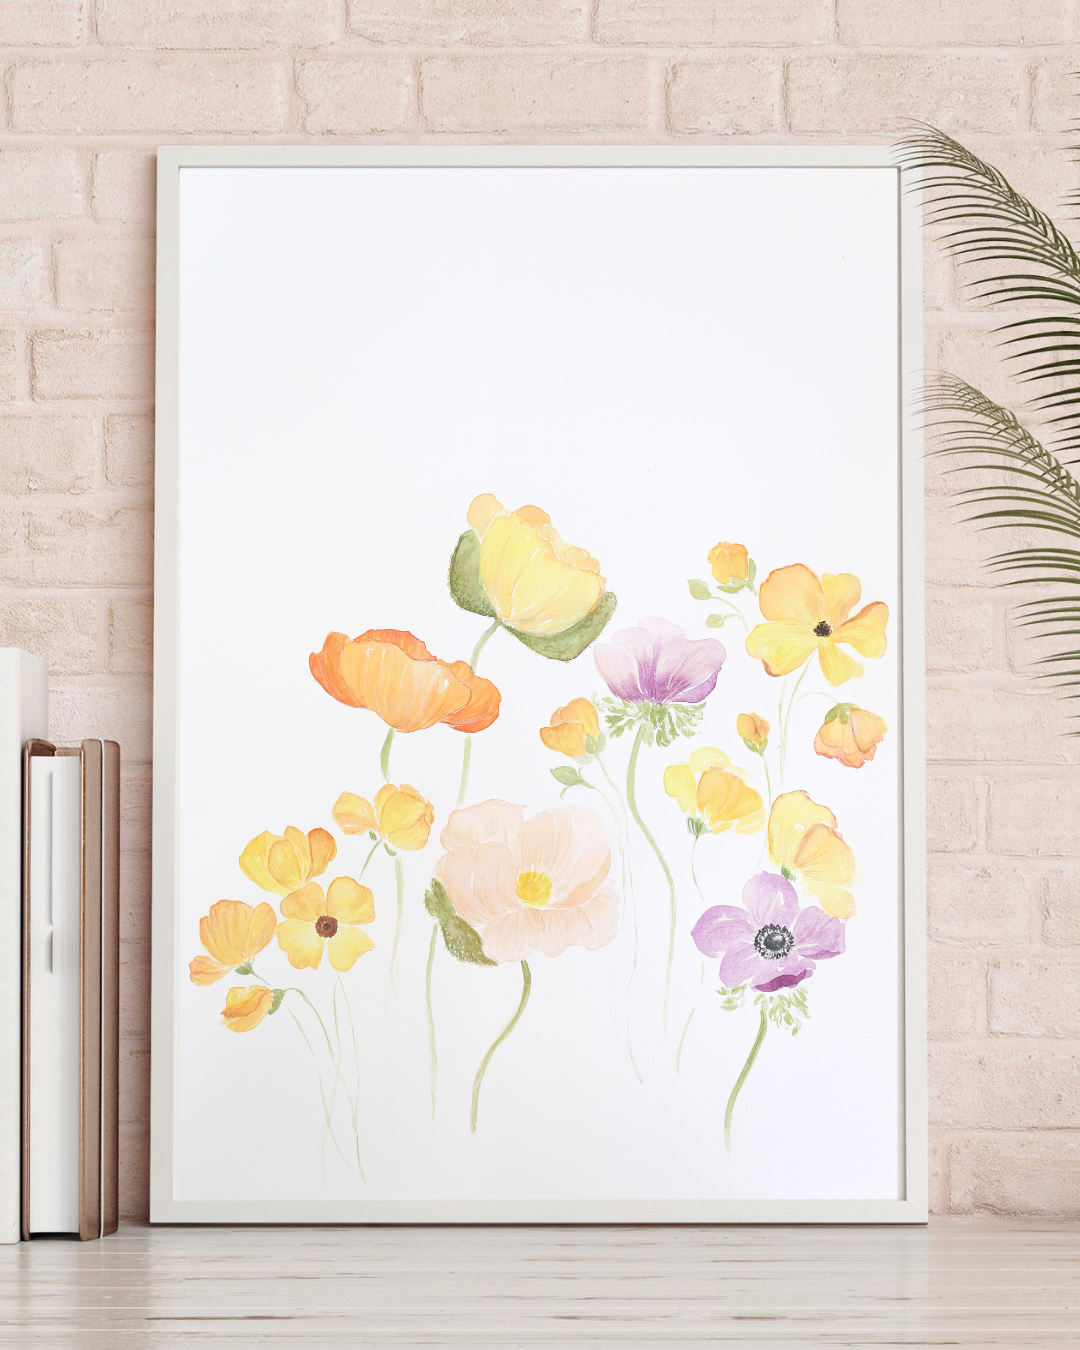 Online Workshop Blumen Aquarellieren